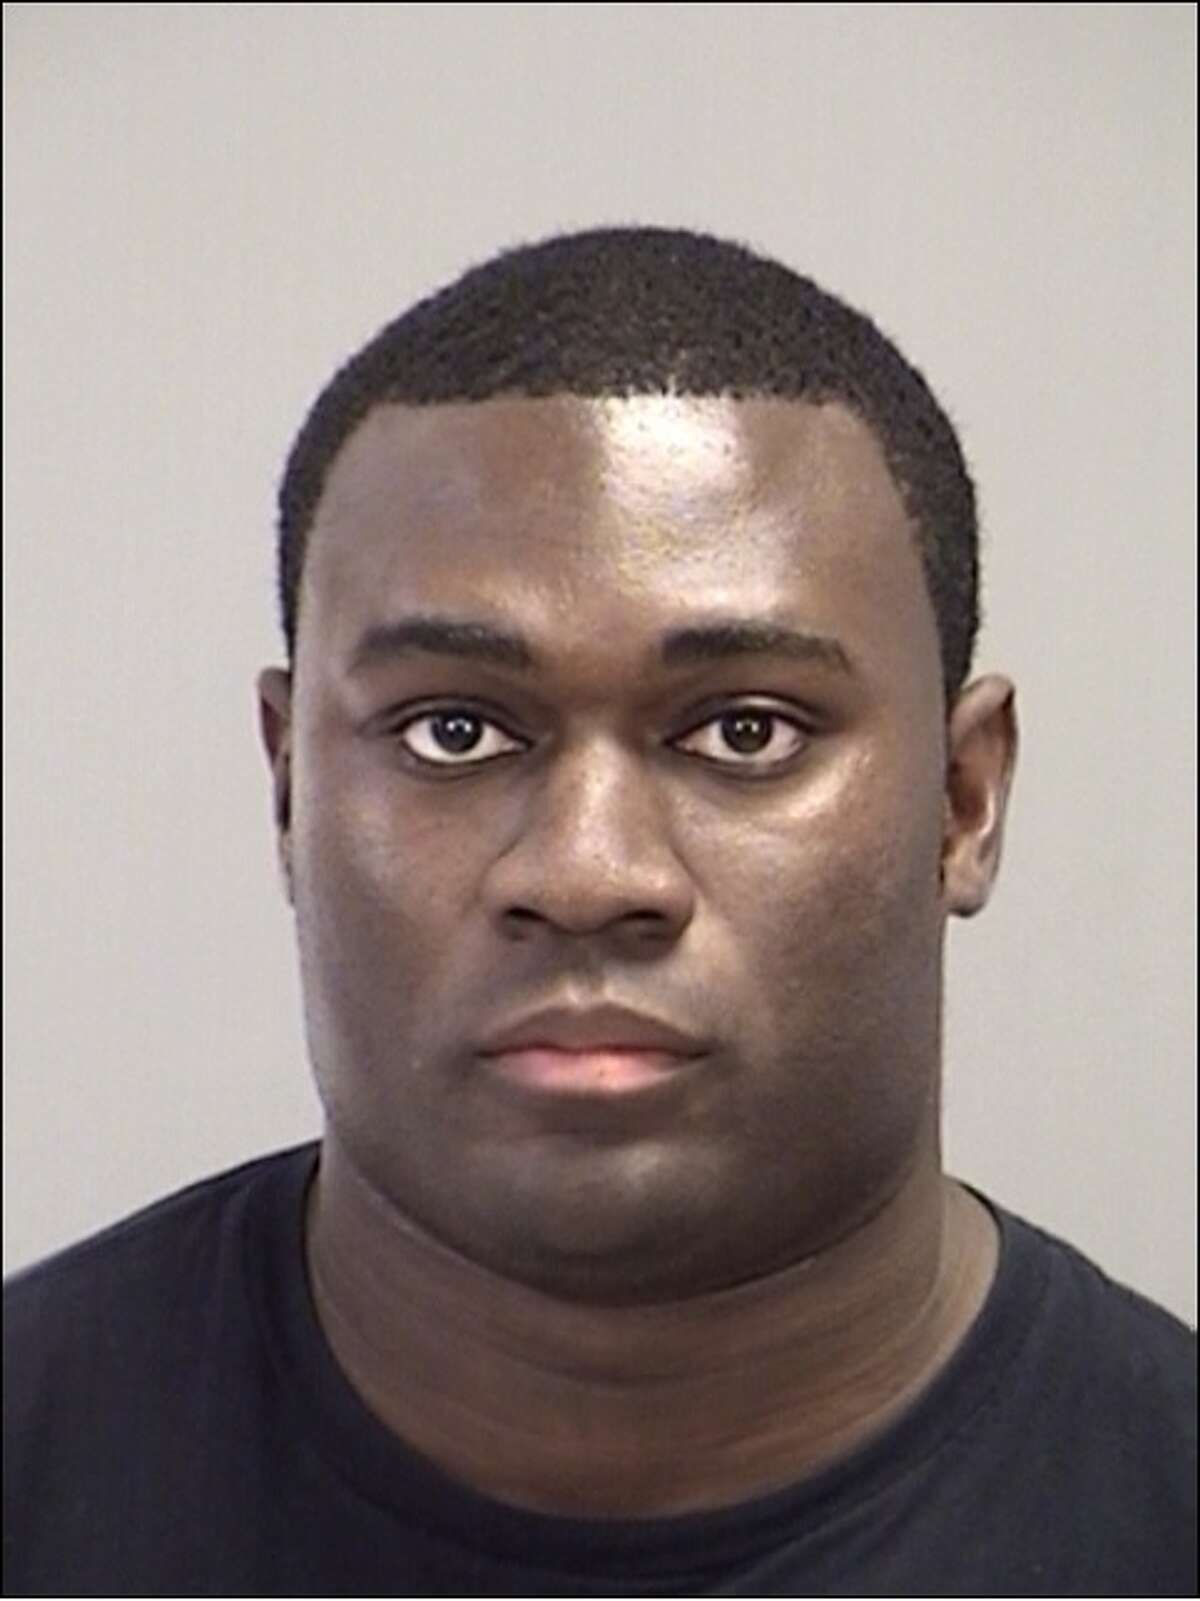 Folushayo Michael Gaiusbayode, 29, was arrested Tuesday morning and charged with two counts of impersonating a peace officer, a class B misdemeanor, according to Brazos County Jail records.